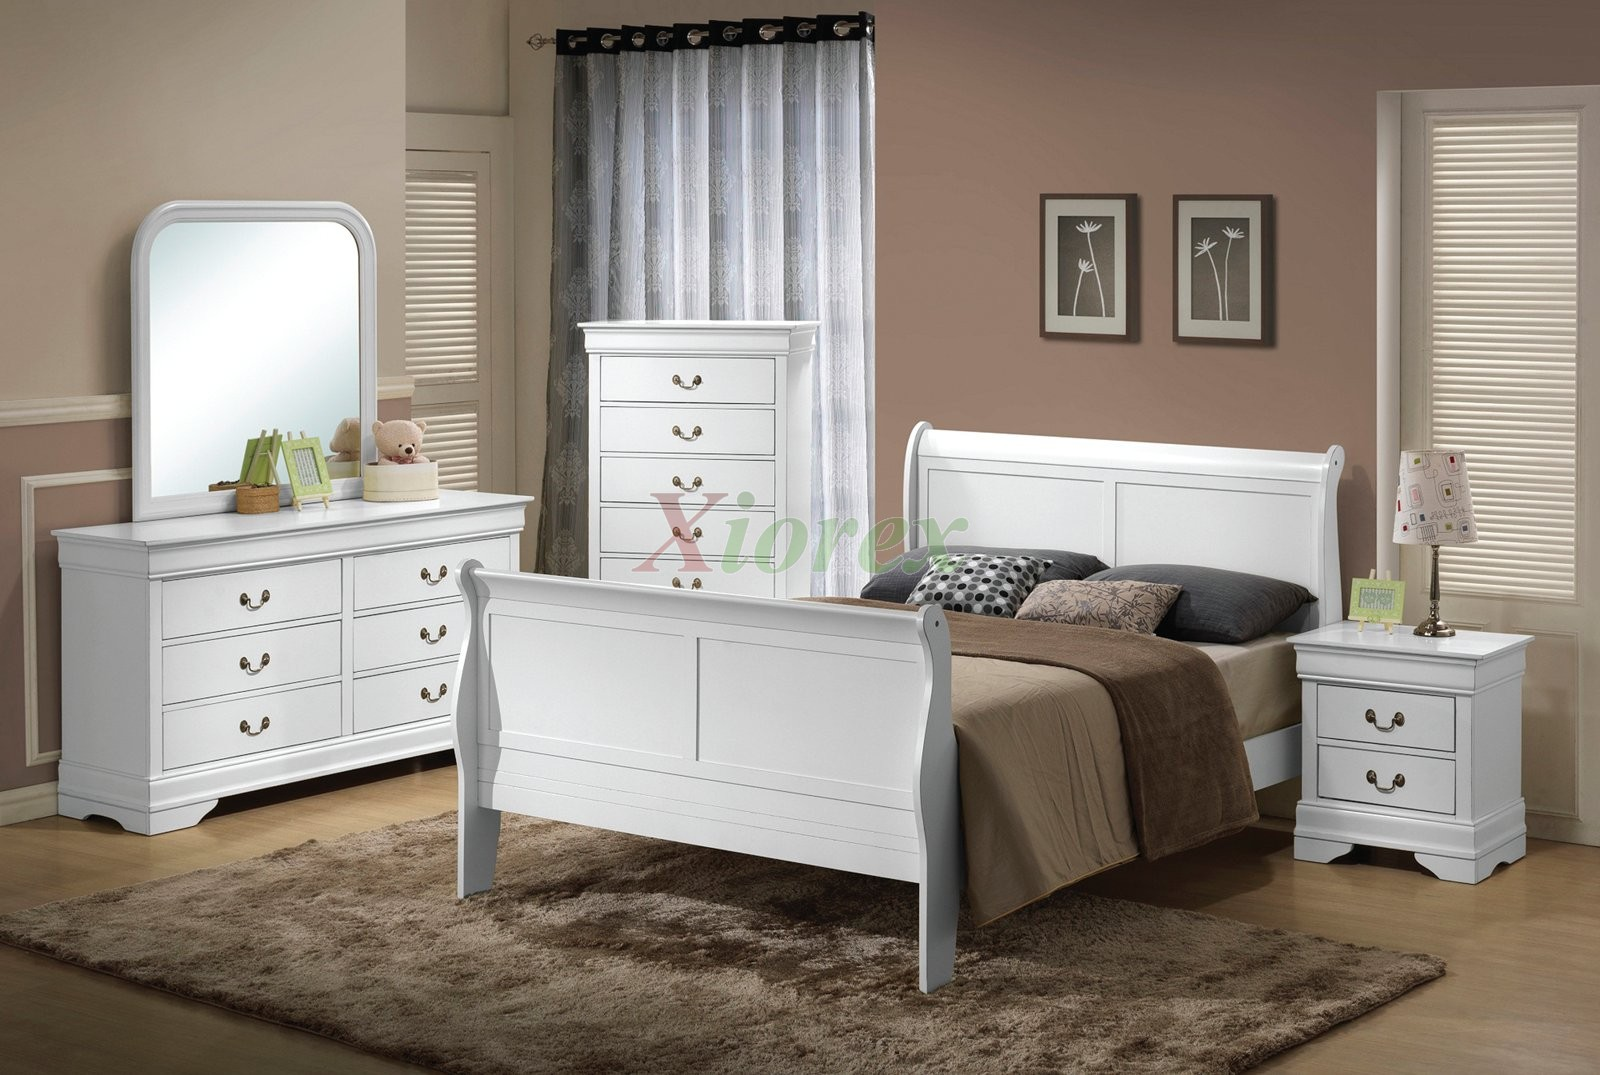 Semi-gloss Sleigh Like Bedroom Furniture Set 170 in Cherry ...